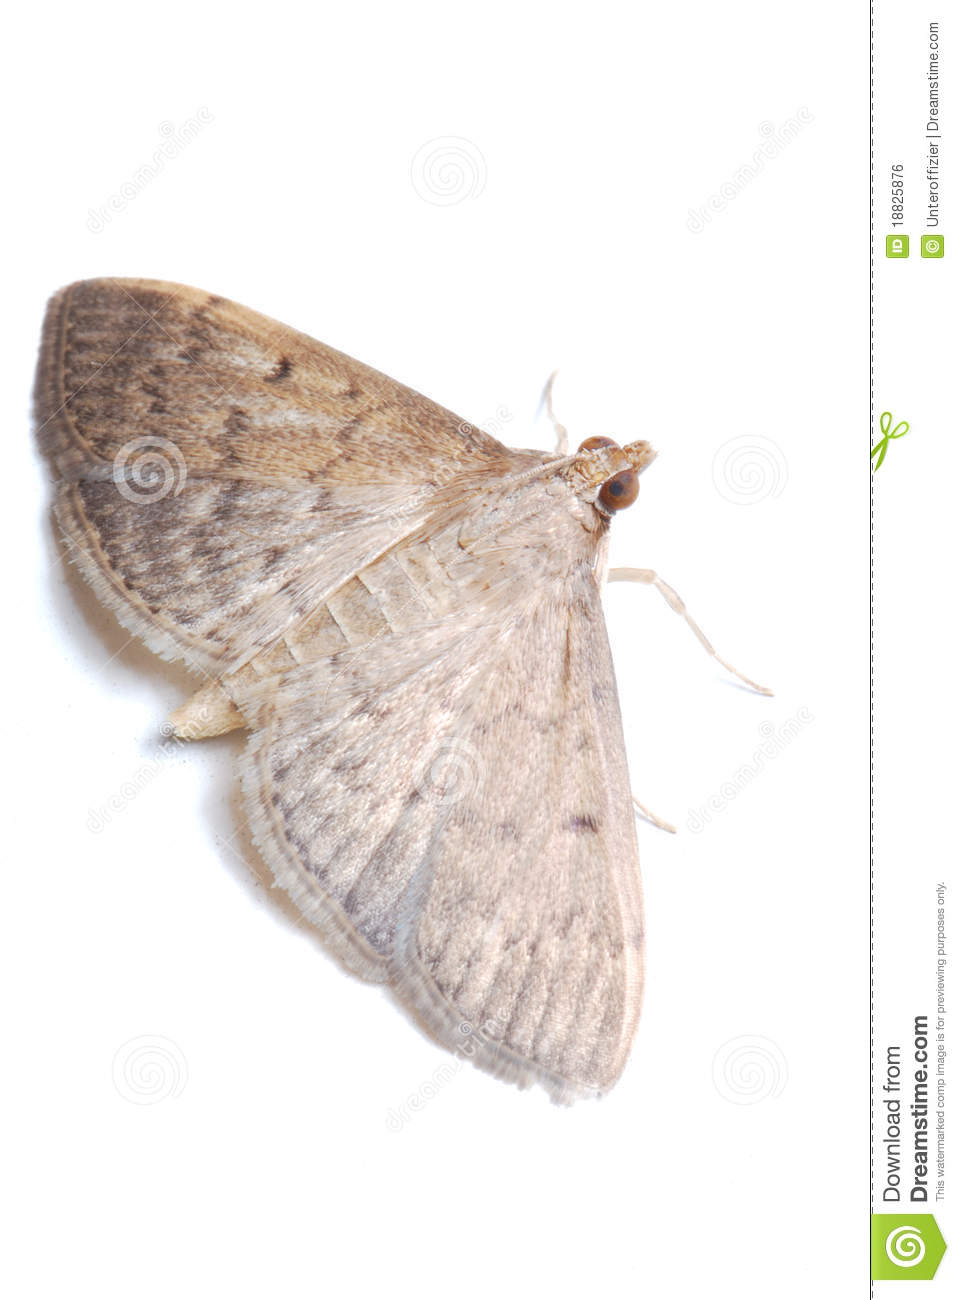 Moth Identification By Color